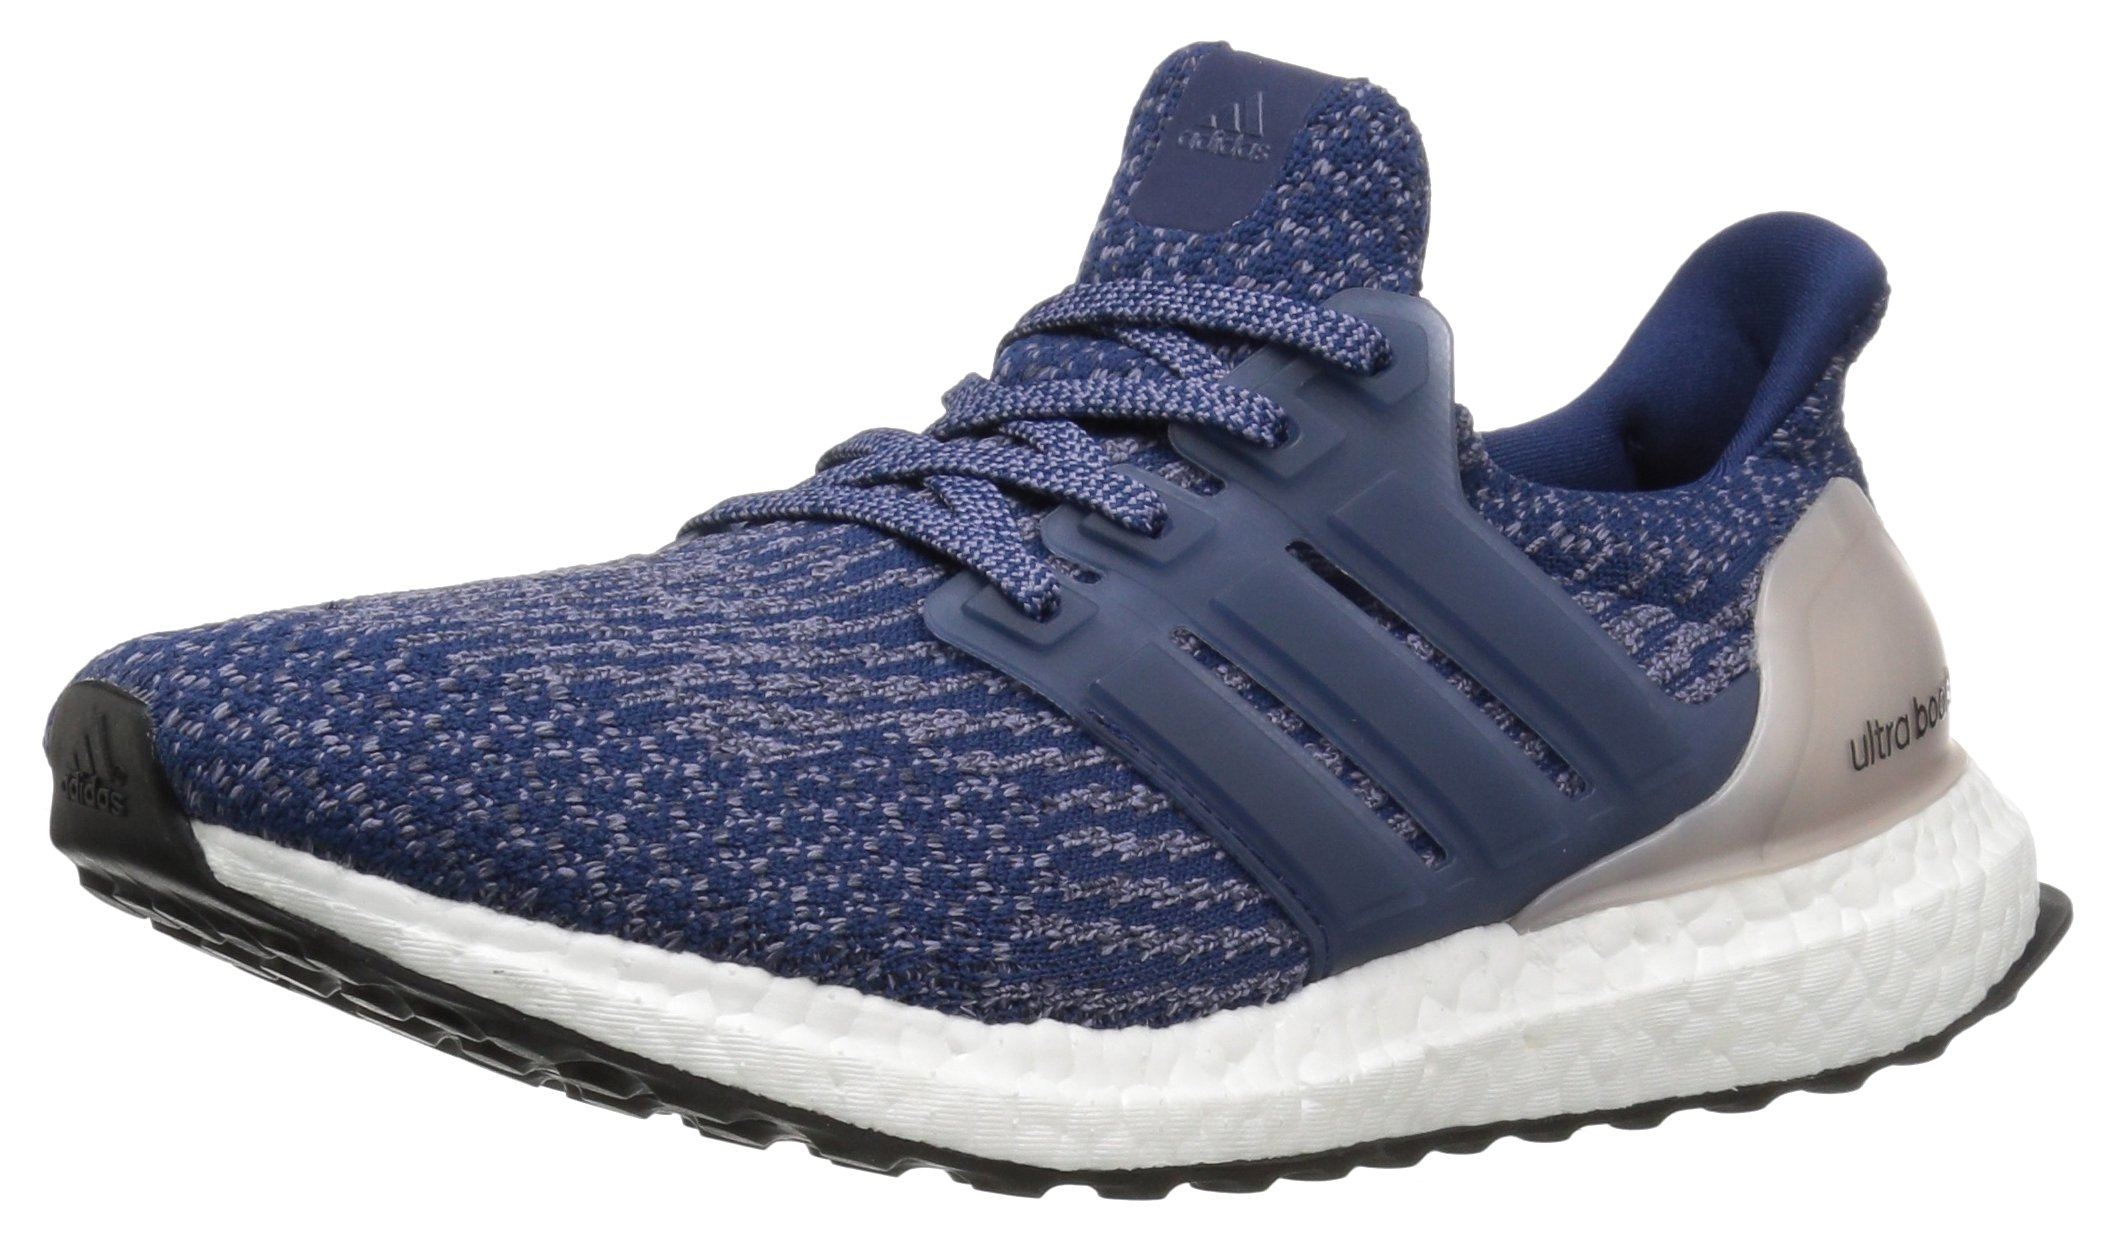 7712c097f837e Galleon - Adidas Women s Ultraboost W Running Shoe